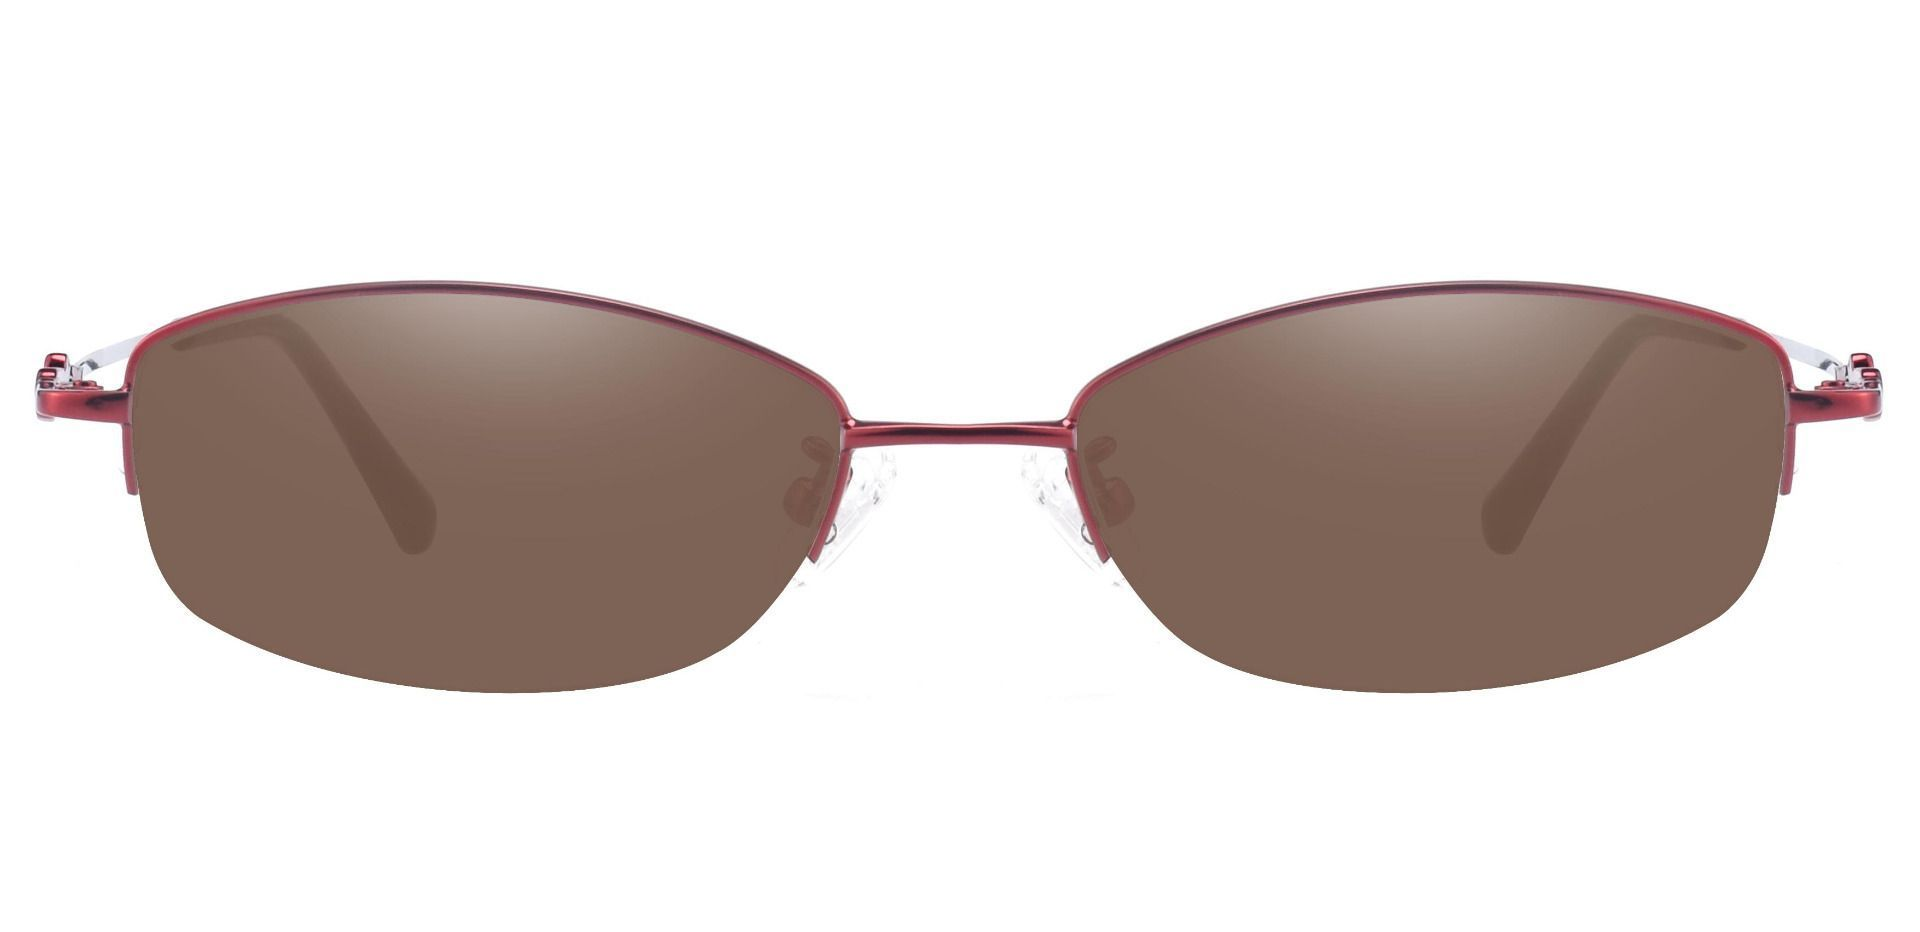 Meadowsweet Oval Non-Rx Sunglasses - Red Frame With Brown Lenses